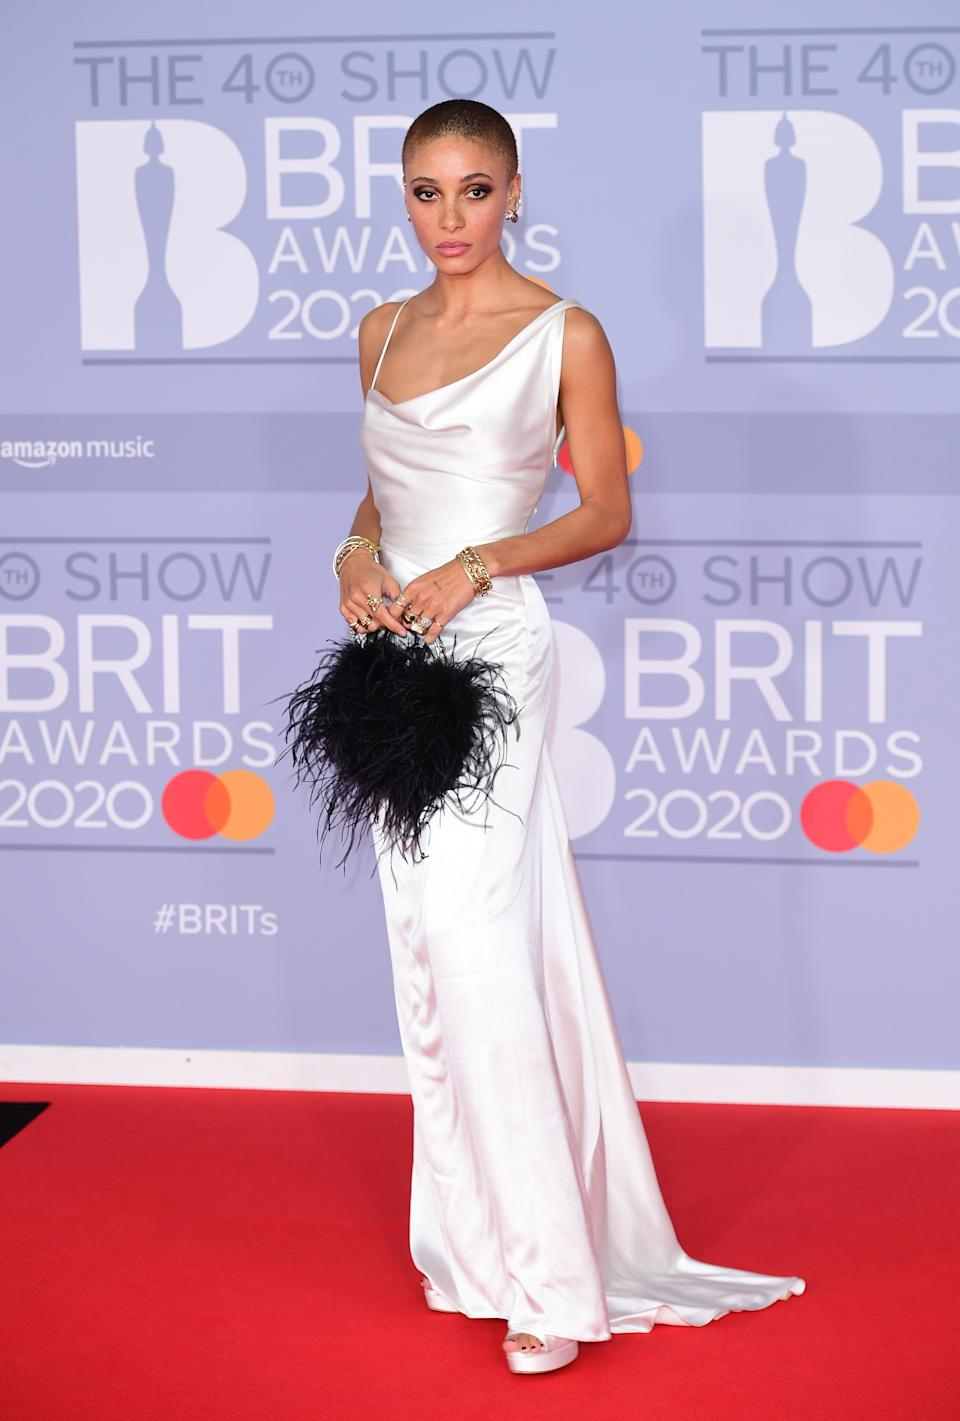 Adwoa Aboah arriving at the Brit Awards 2020 held at the O2 Arena, London.